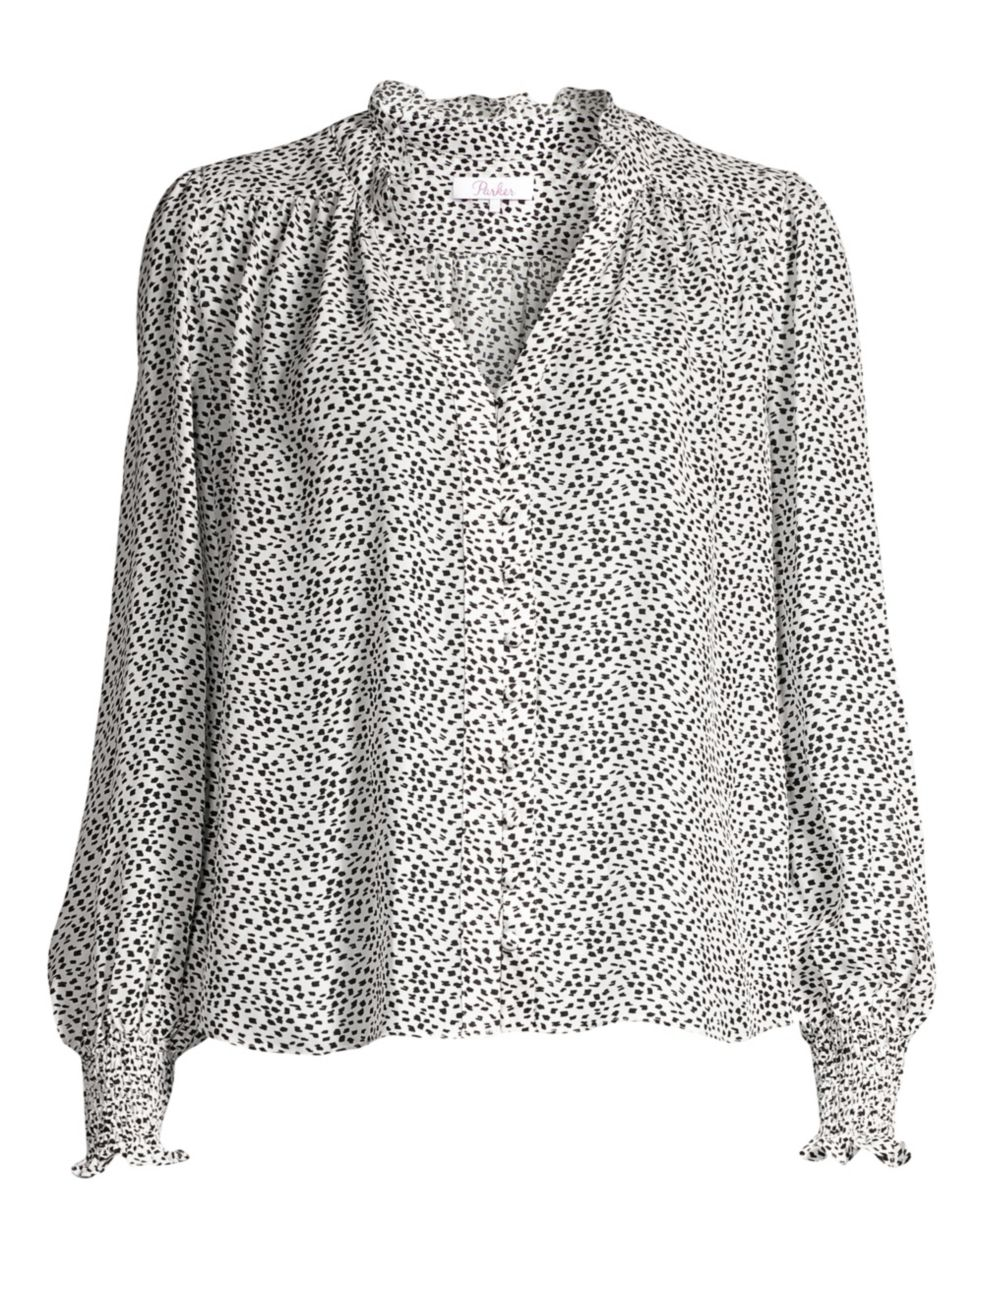 Parker Daniella Long Sleeve Spotted Blouse, $238